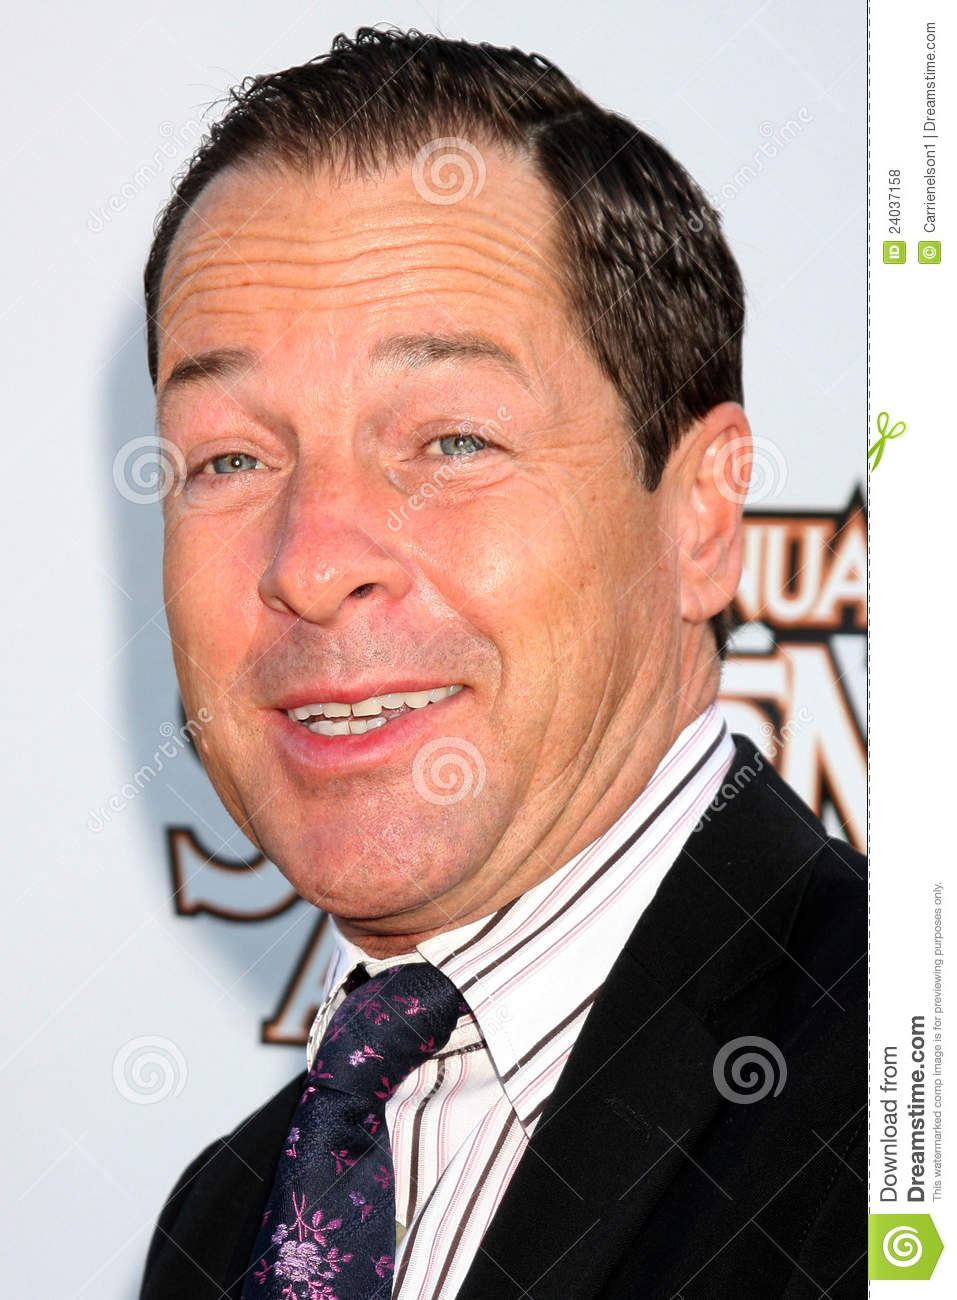 french stewart instagram